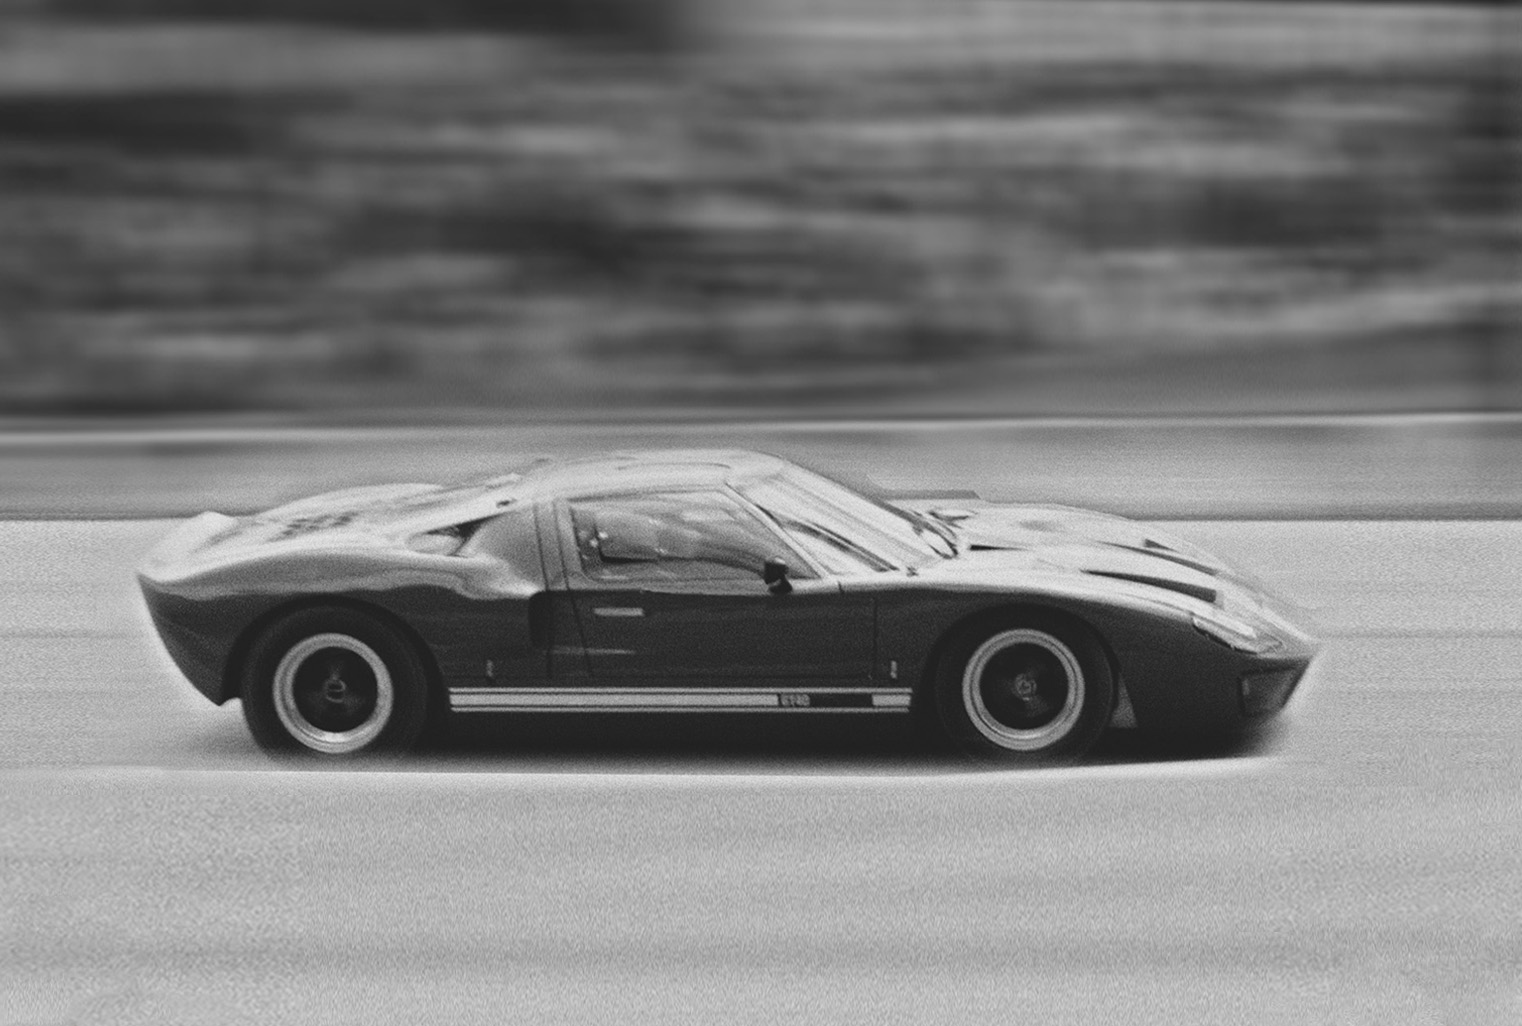 From GT40 cars for sale today to historical GT40 cars